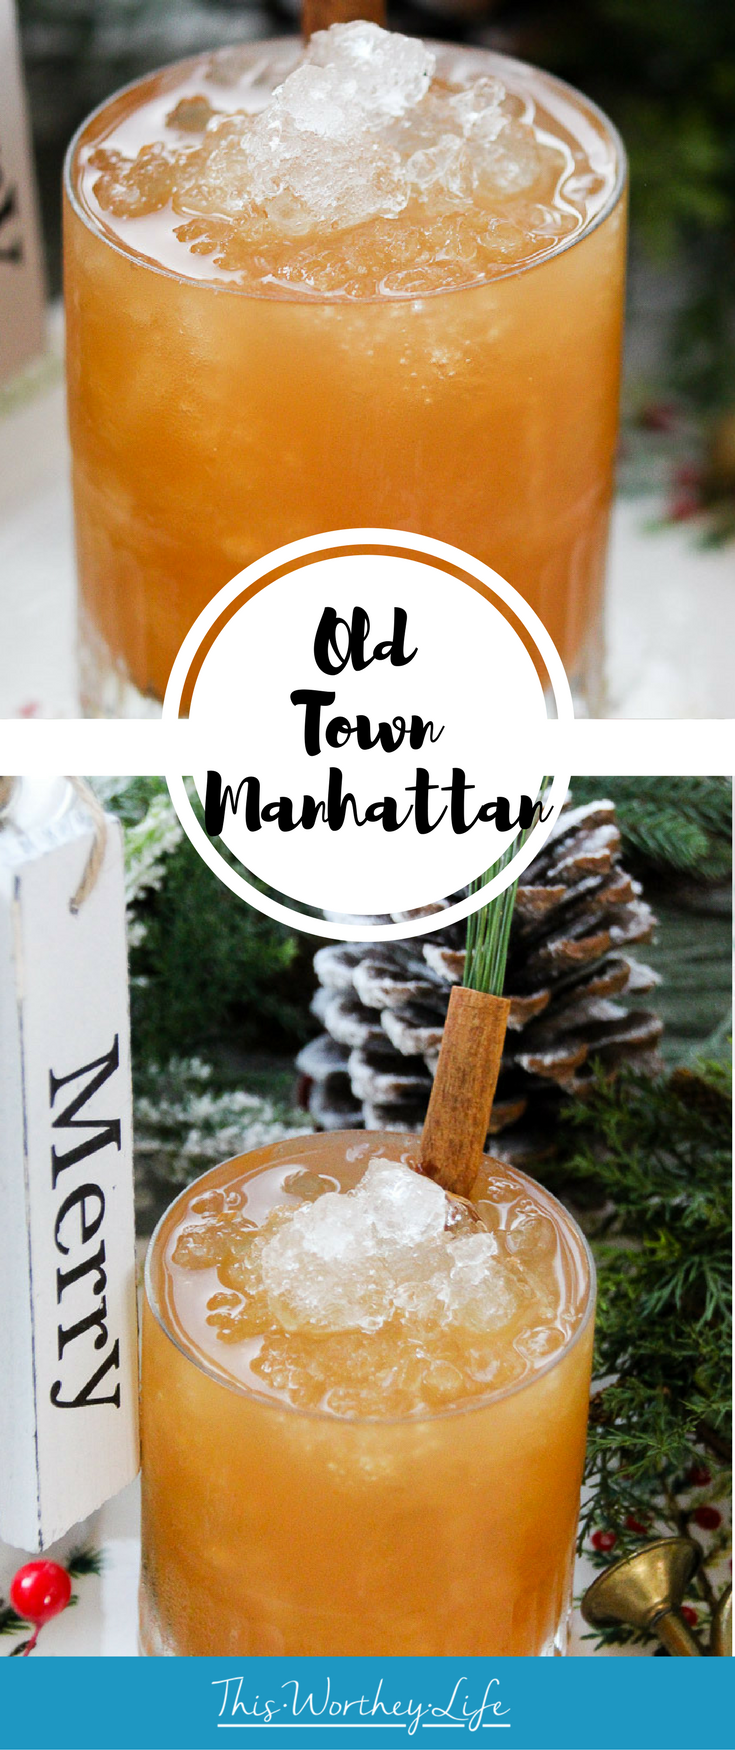 Give your classic Manhattan cocktail a twist with fresh pressed juice. And if you don't have that readily available, mix your whiskey with apple cider to create our Old Town Manhattan cocktail.